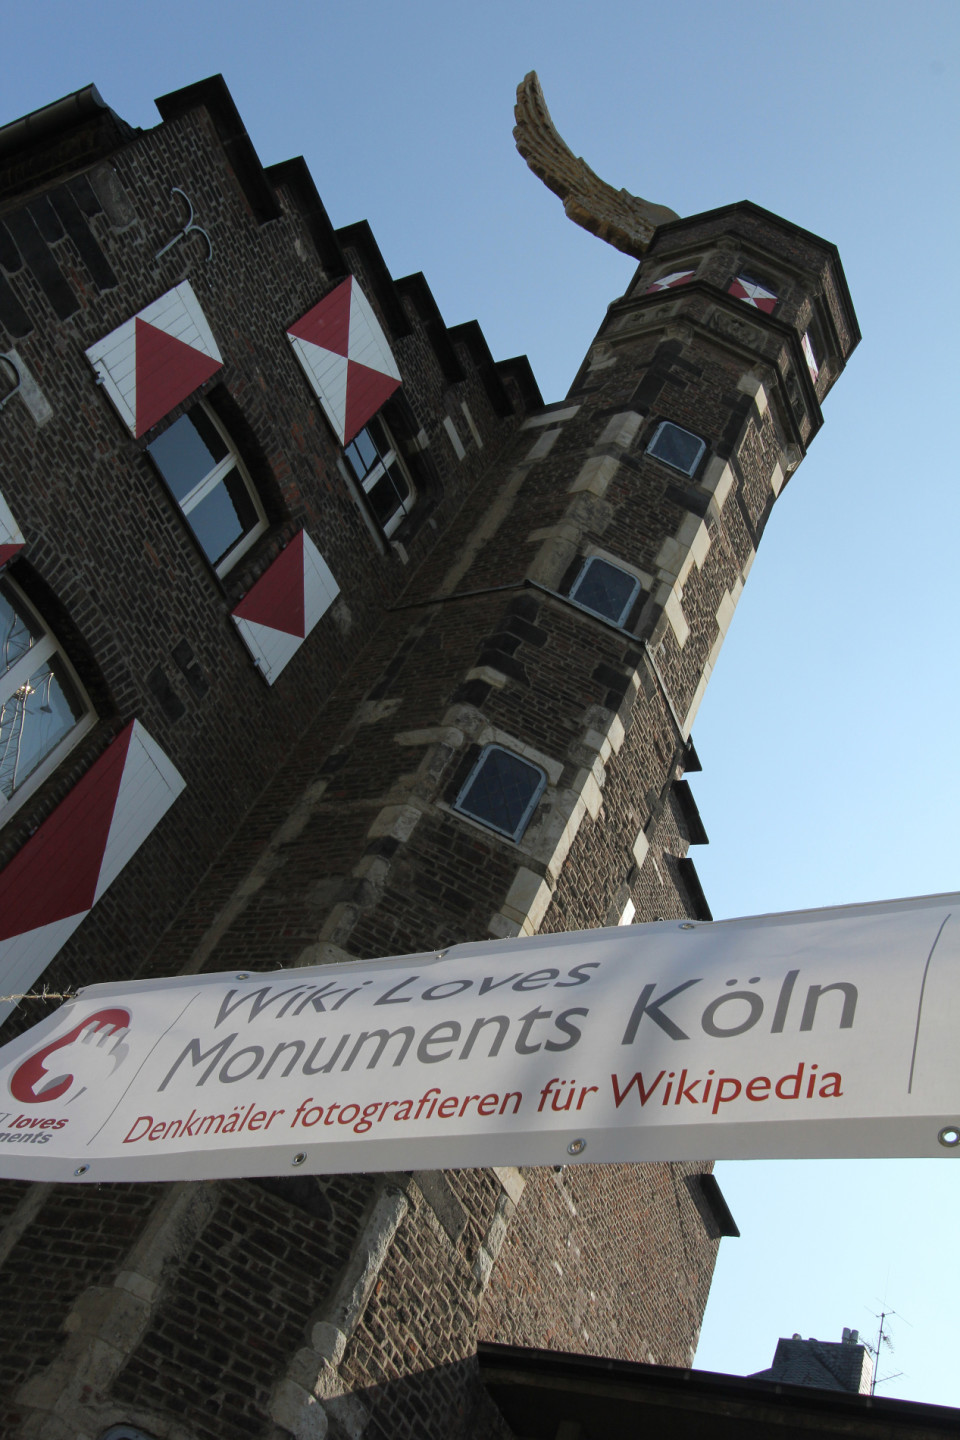 Wiki took Cologne!